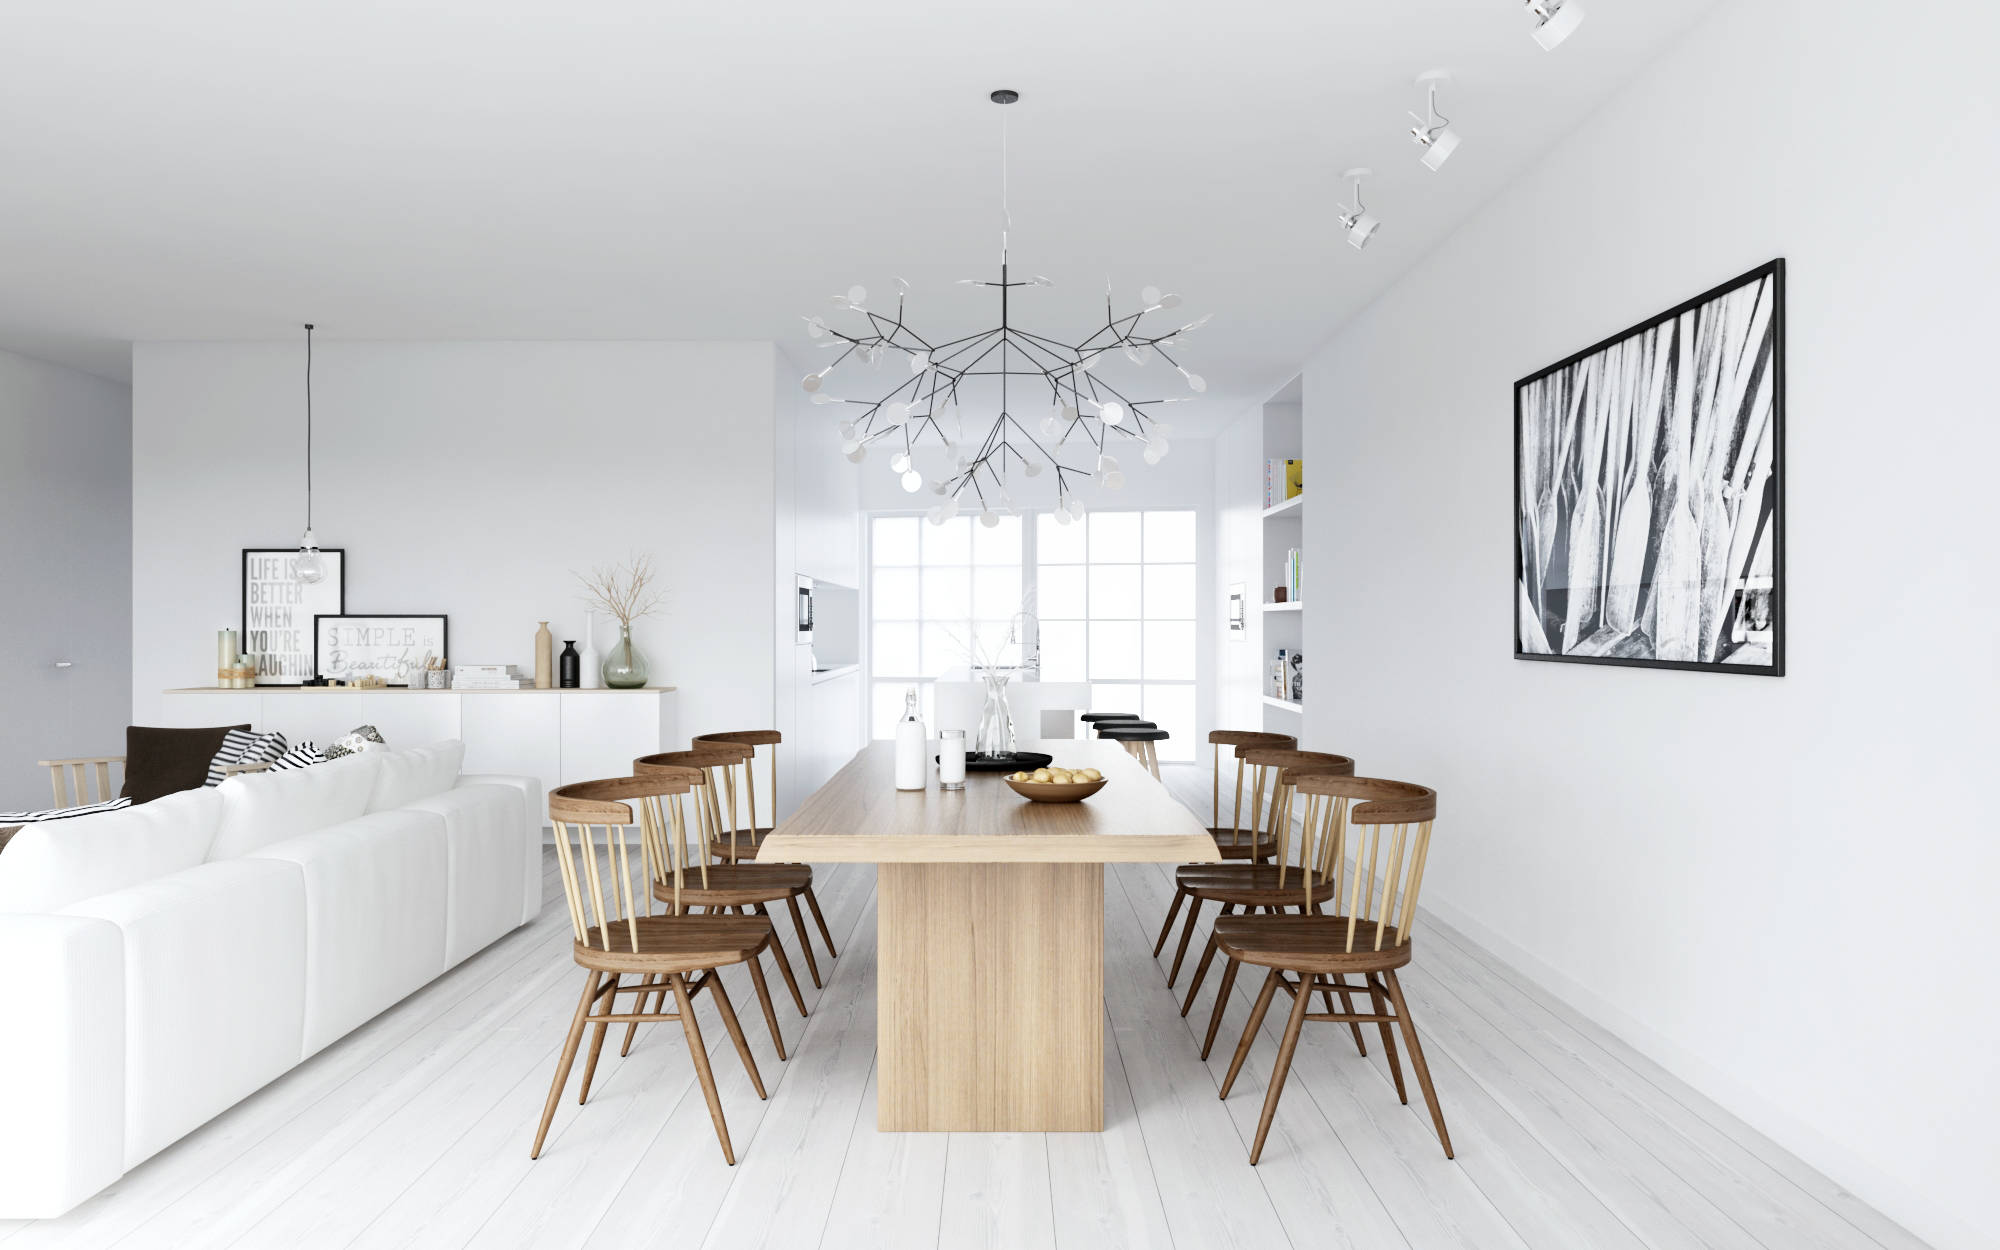 Atdesign nordic style dining in monochrome and wood